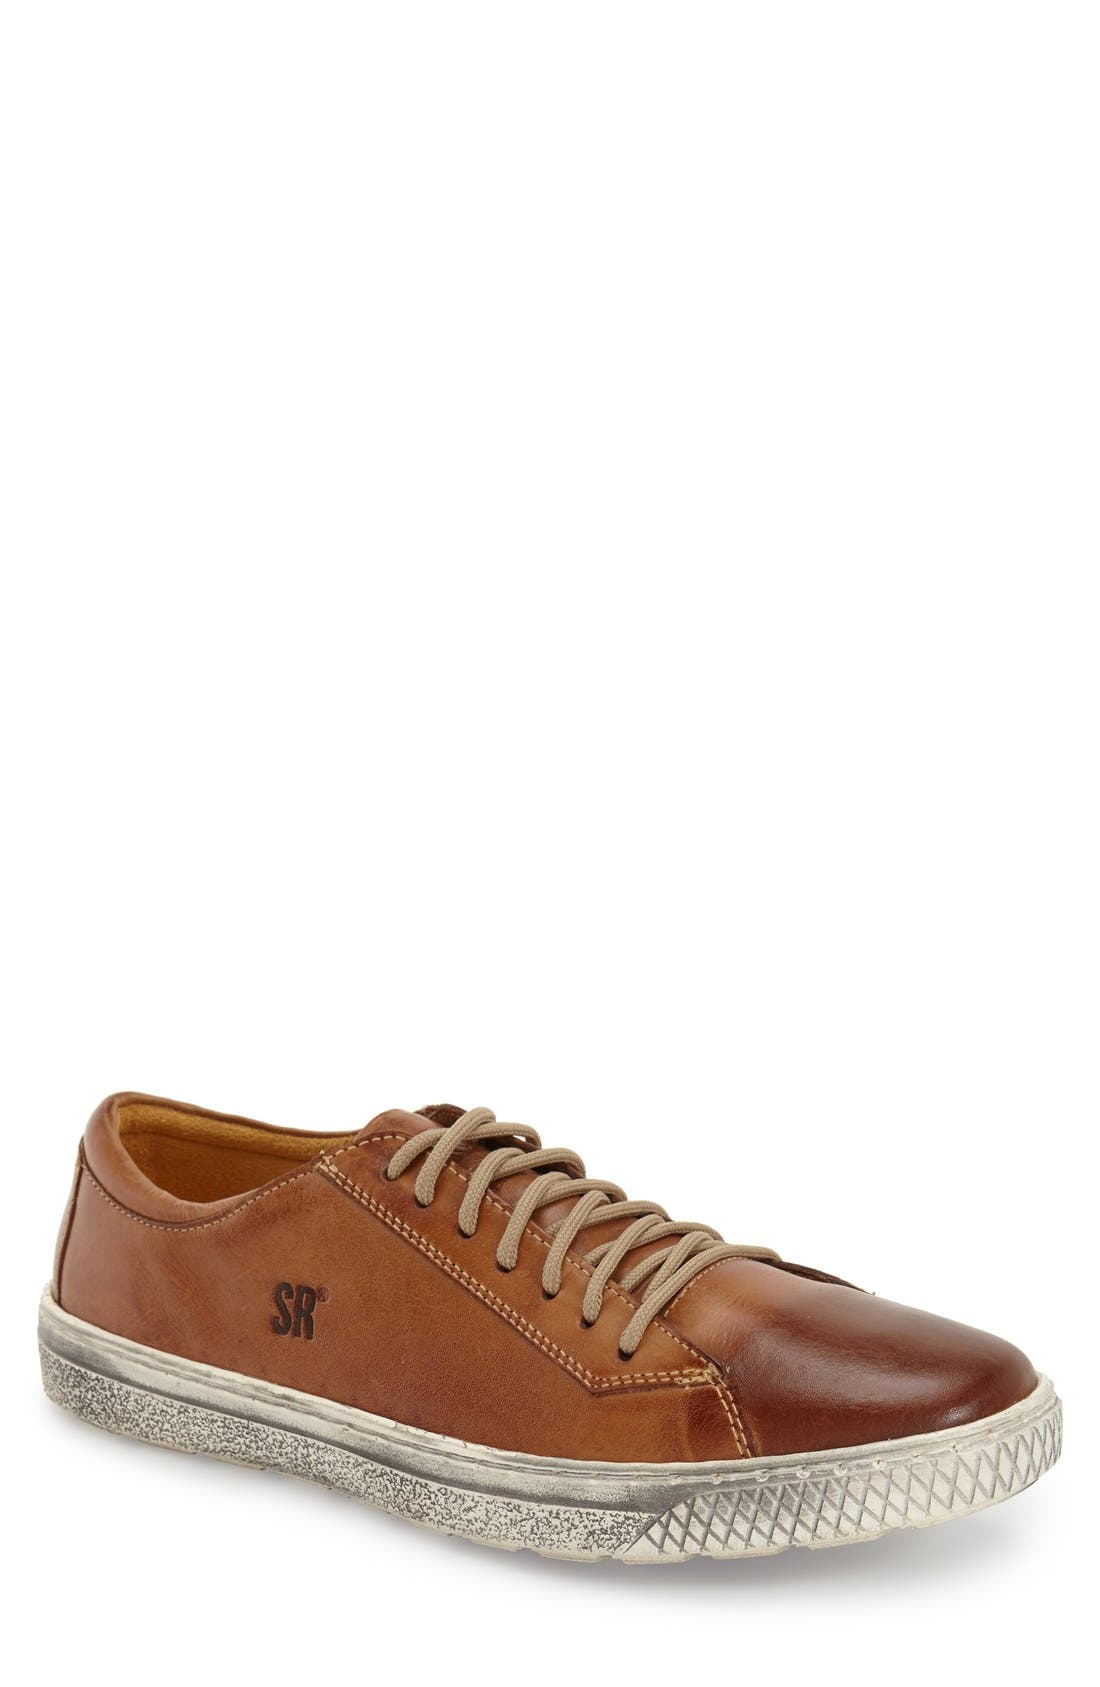 Alternate Image 1 Selected - Sandro Moscoloni 'Rolly' Sneaker (Men)